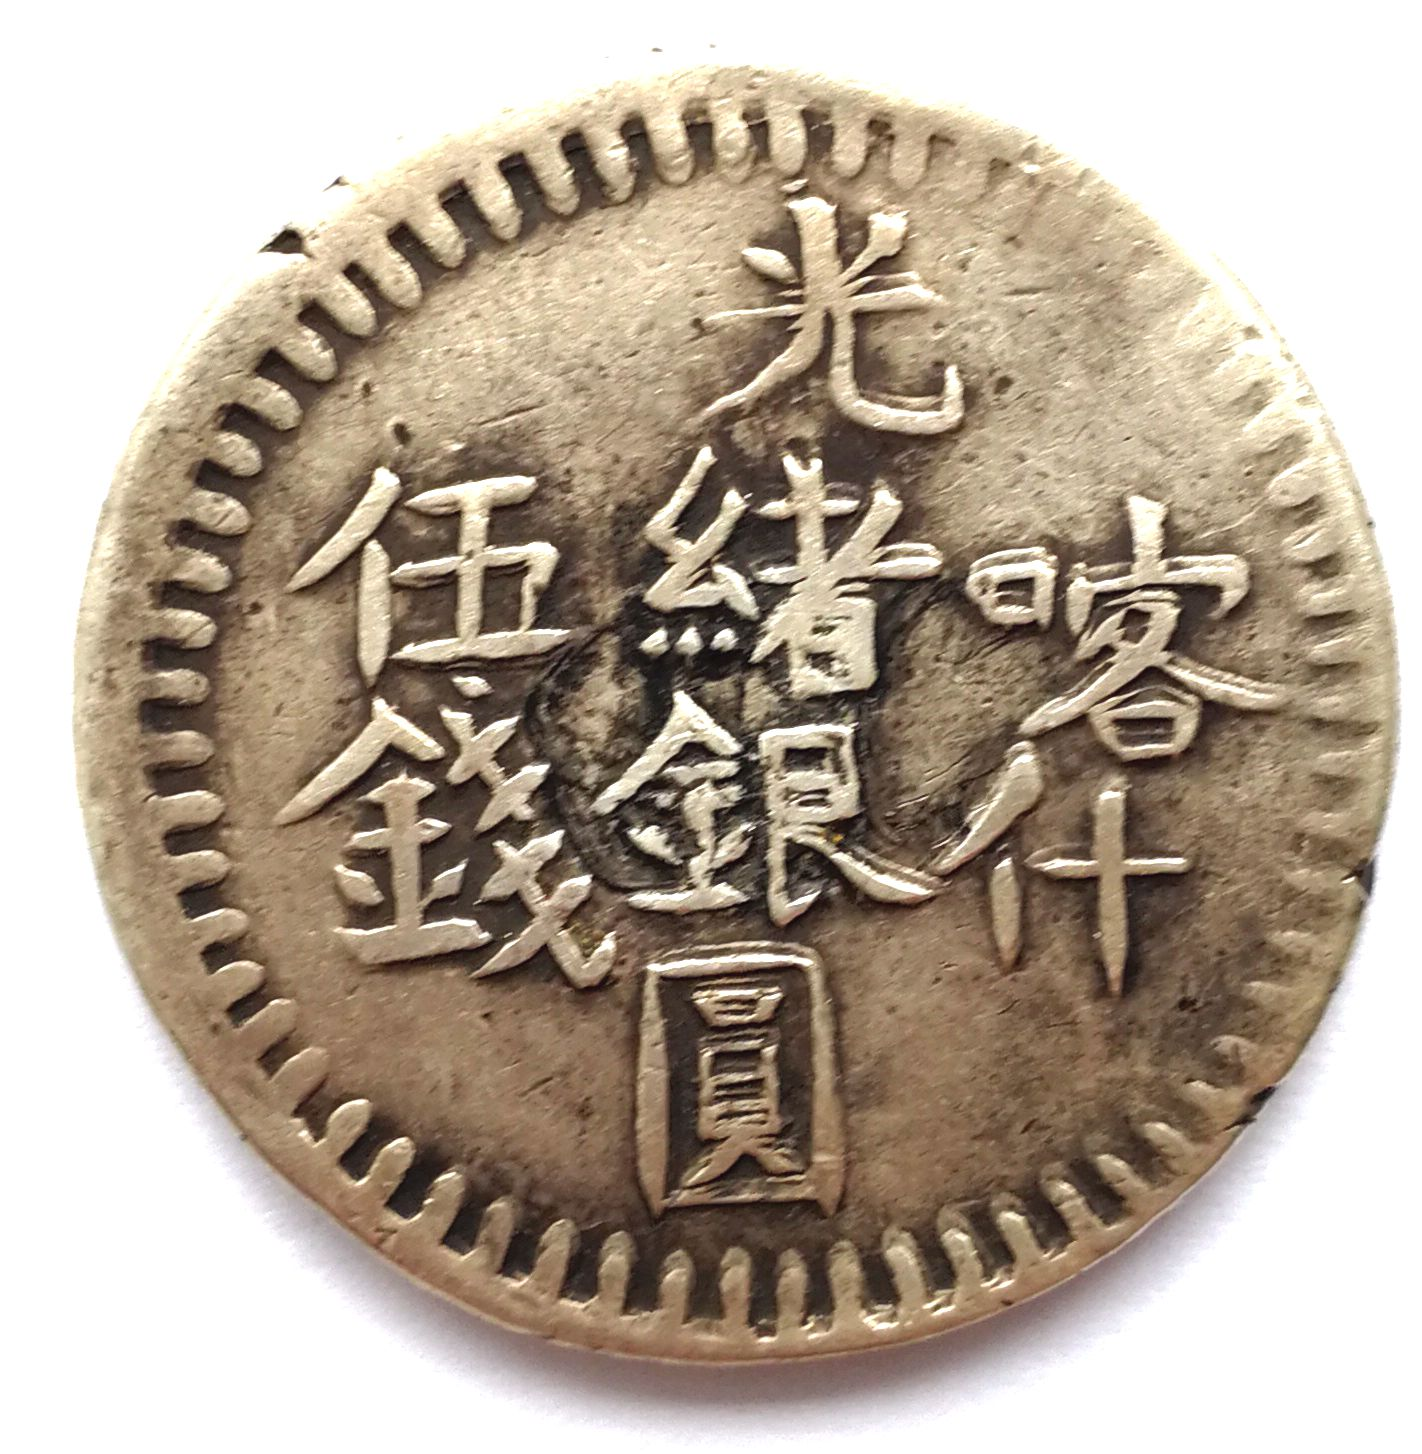 P4009, Sinkiang Silver Coin, 5 Miscals, Kashgar Mint, 1902